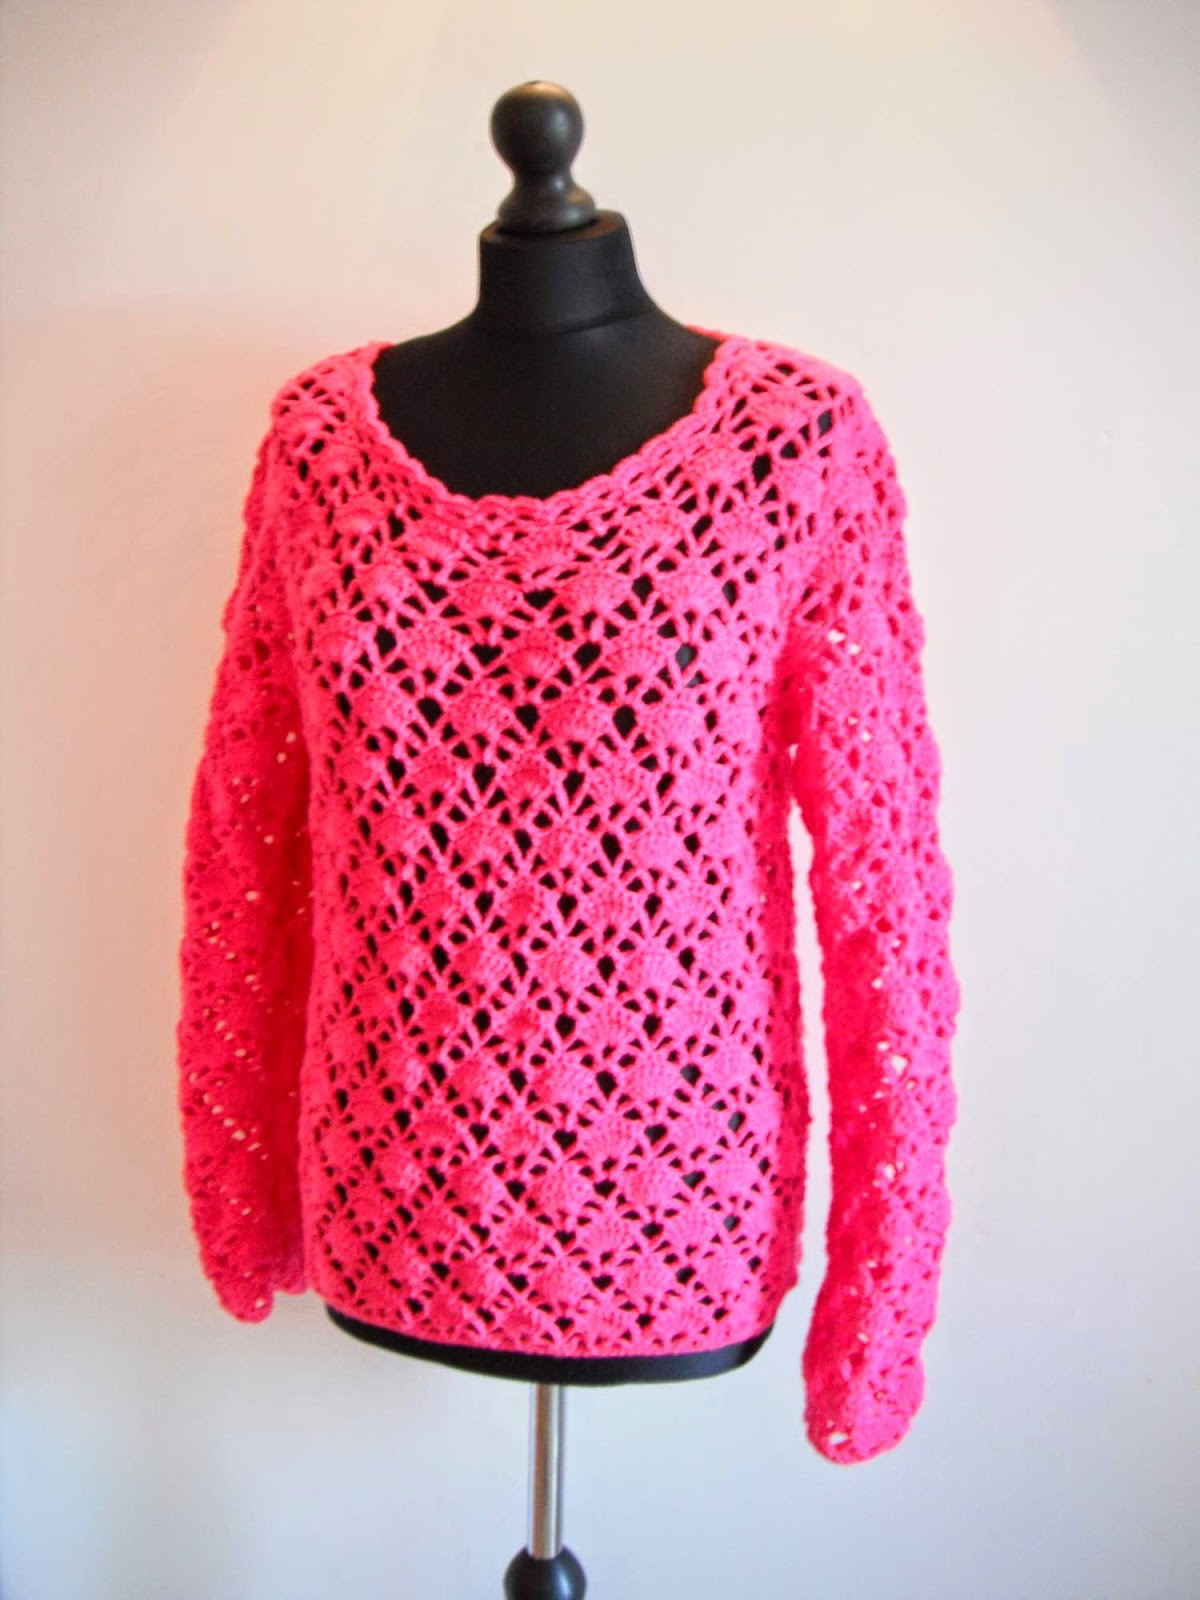 Crochet Pullover Sweater Best Of Free Crochet Patterns and Video Tutorials How to Crochet Of Delightful 48 Pics Crochet Pullover Sweater